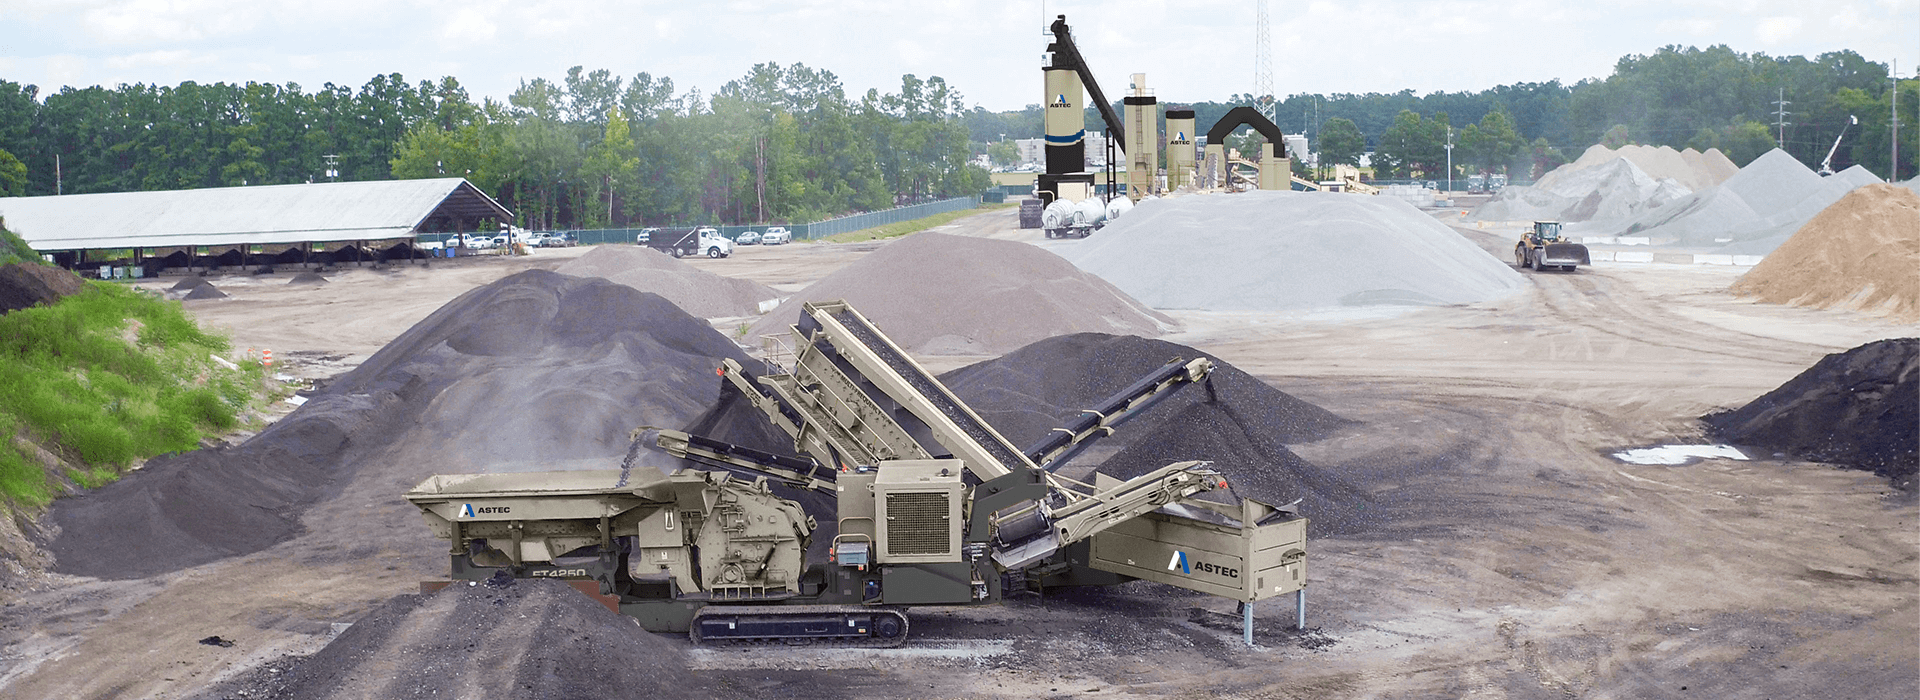 Mobile HSI crusher feeding a mobile incline screen processing recycled asphalt pavement millings.